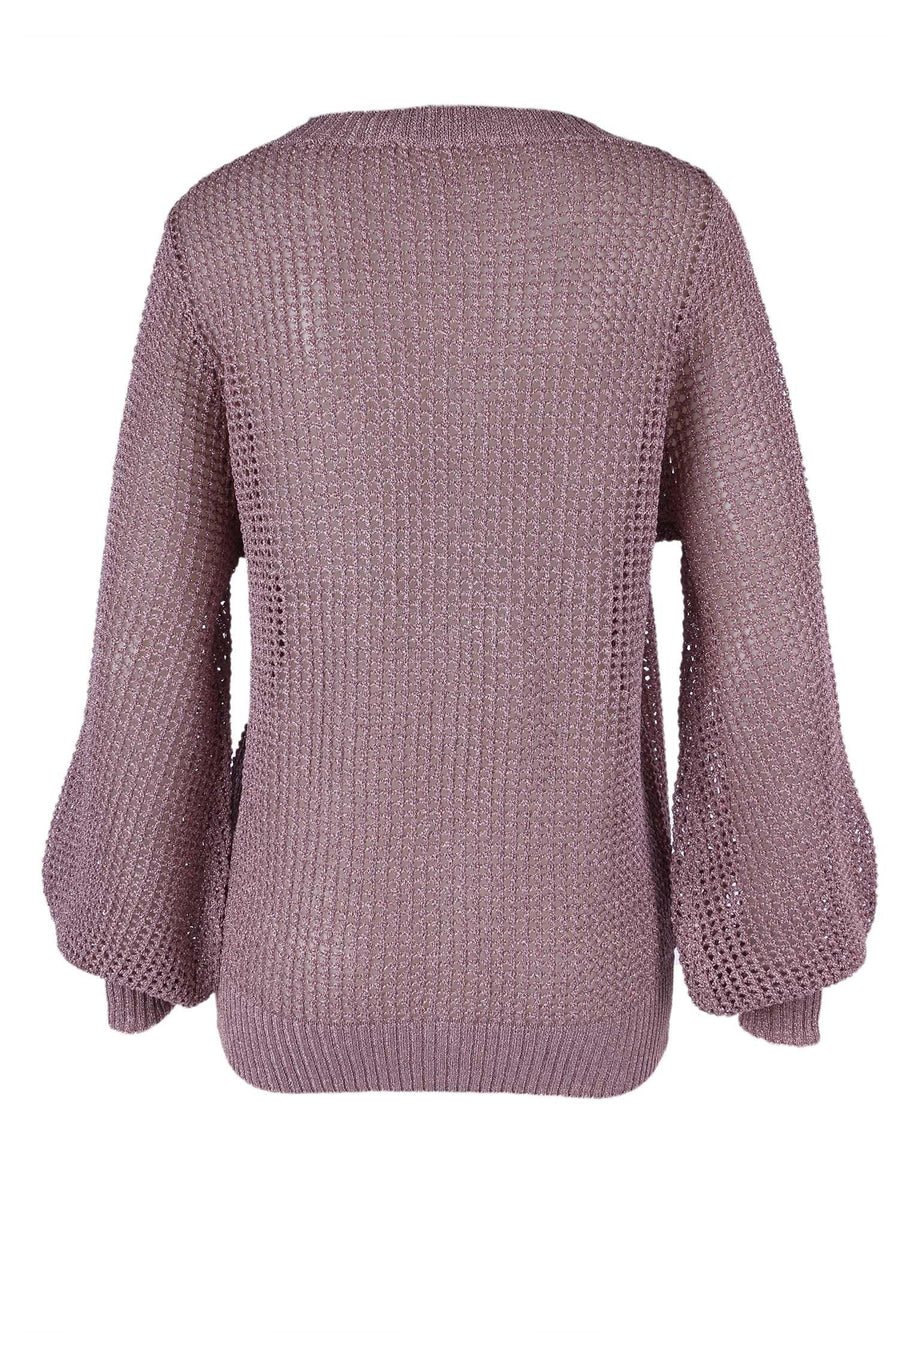 Shop Online Goldie Slouch Jumper in Pink by We Are Kindred  Frockaholics Tops